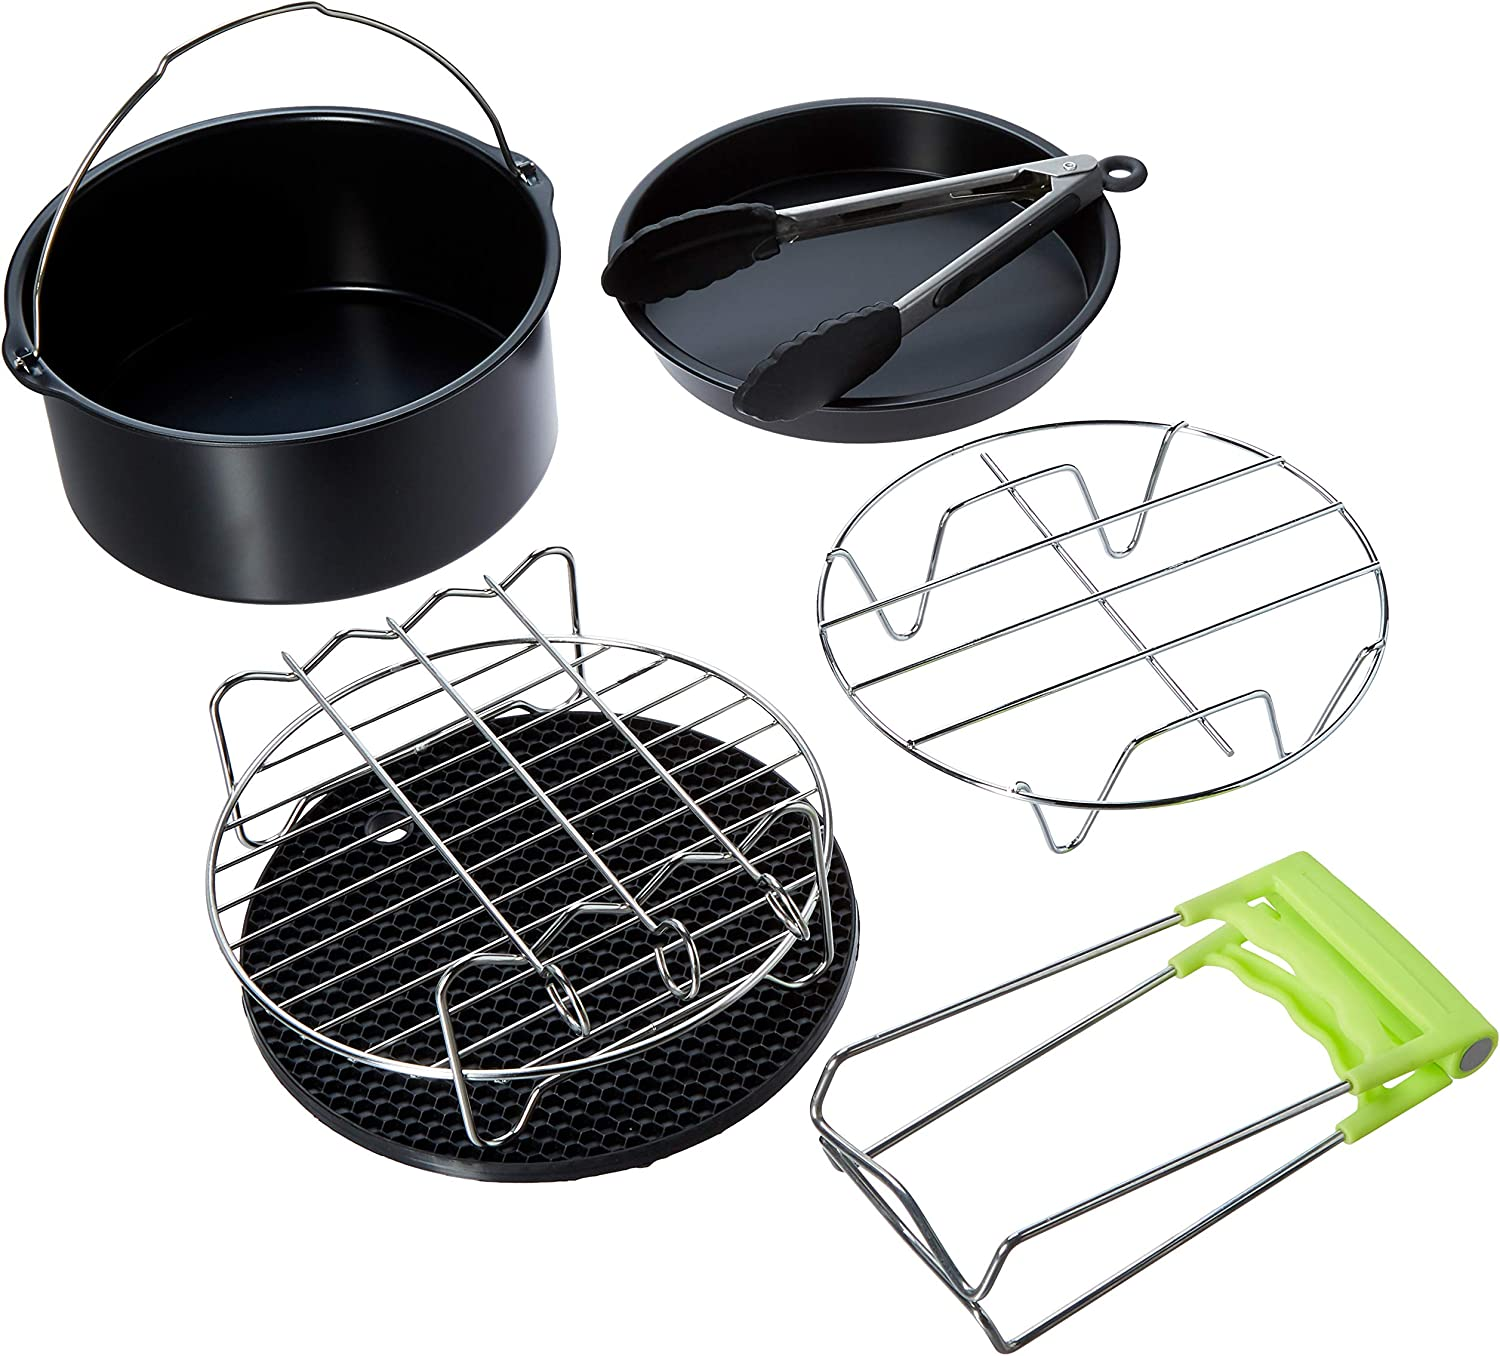 Air Fryer Accessories,for Phillips Air Fryer and Gowise Air Fryer Deep Fryer Universal, Cake Barrel, Pizza Pan, Silicone Mat, Skewer Rack, Metal holder Fit all 3.7QT-5.3QT-5.8QT (7 Inch)